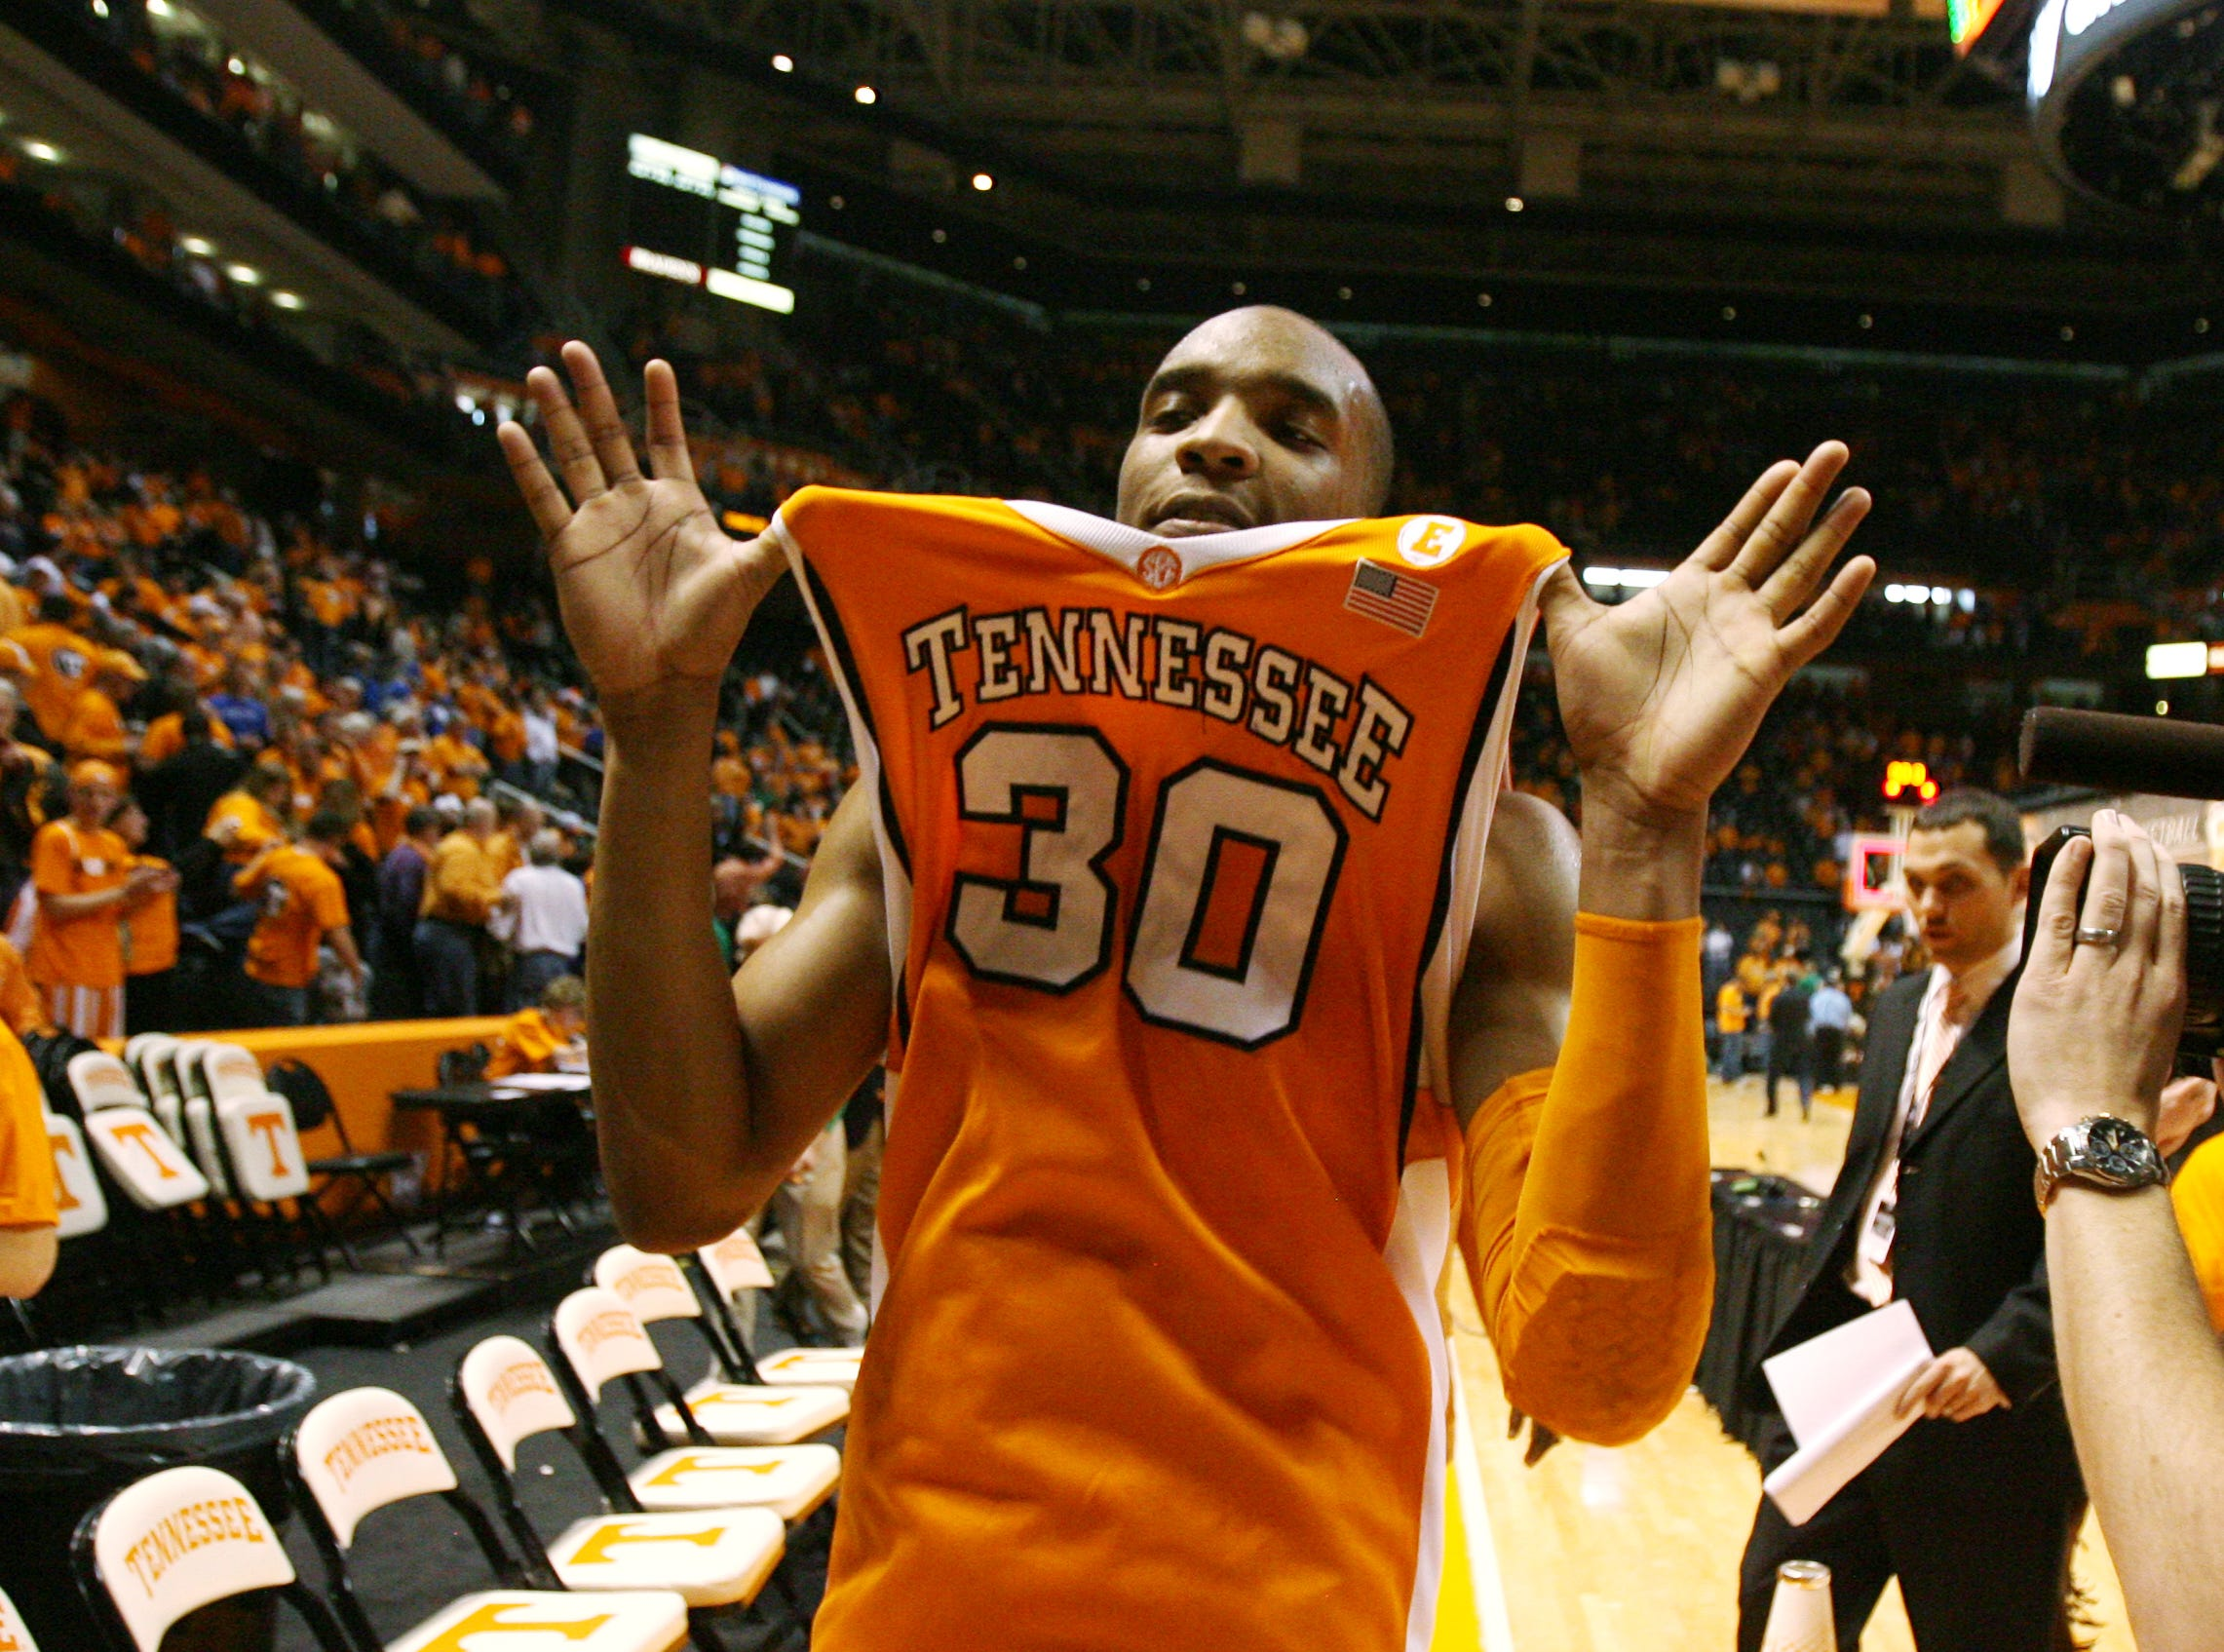 Tennessee guard J.P. Prince holds his jersey out after he led the Vols with 20 points to defeat the Kentucky Wildcats 74-65 at Thompson-Boling Arena Saturday, Feb. 27, 2010.